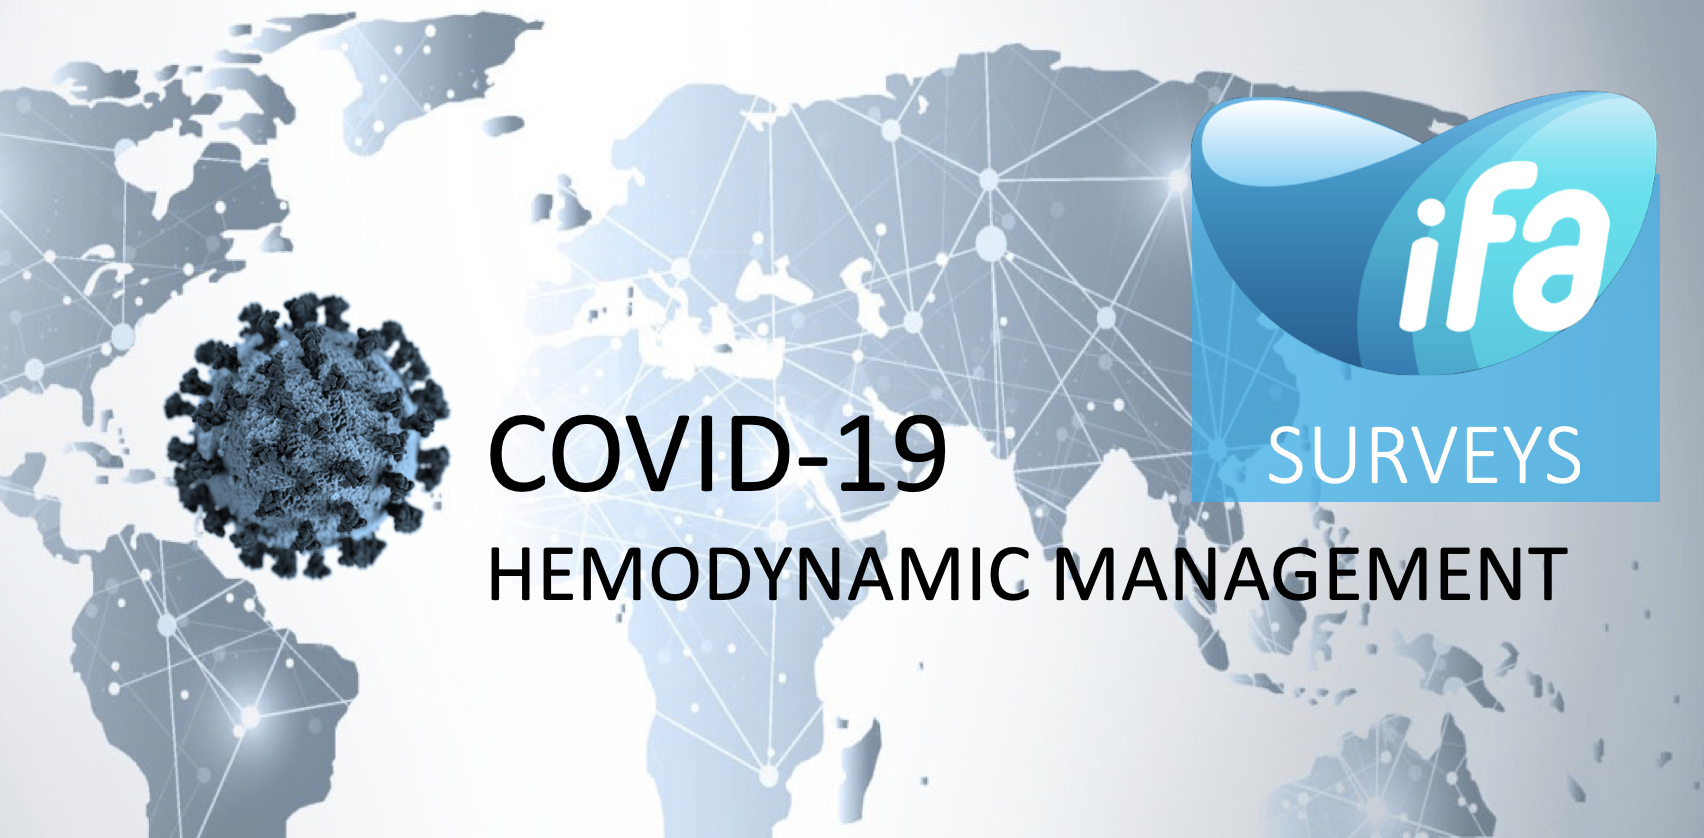 Fill in #COVID19 survey on Hemodynamic Monitoring